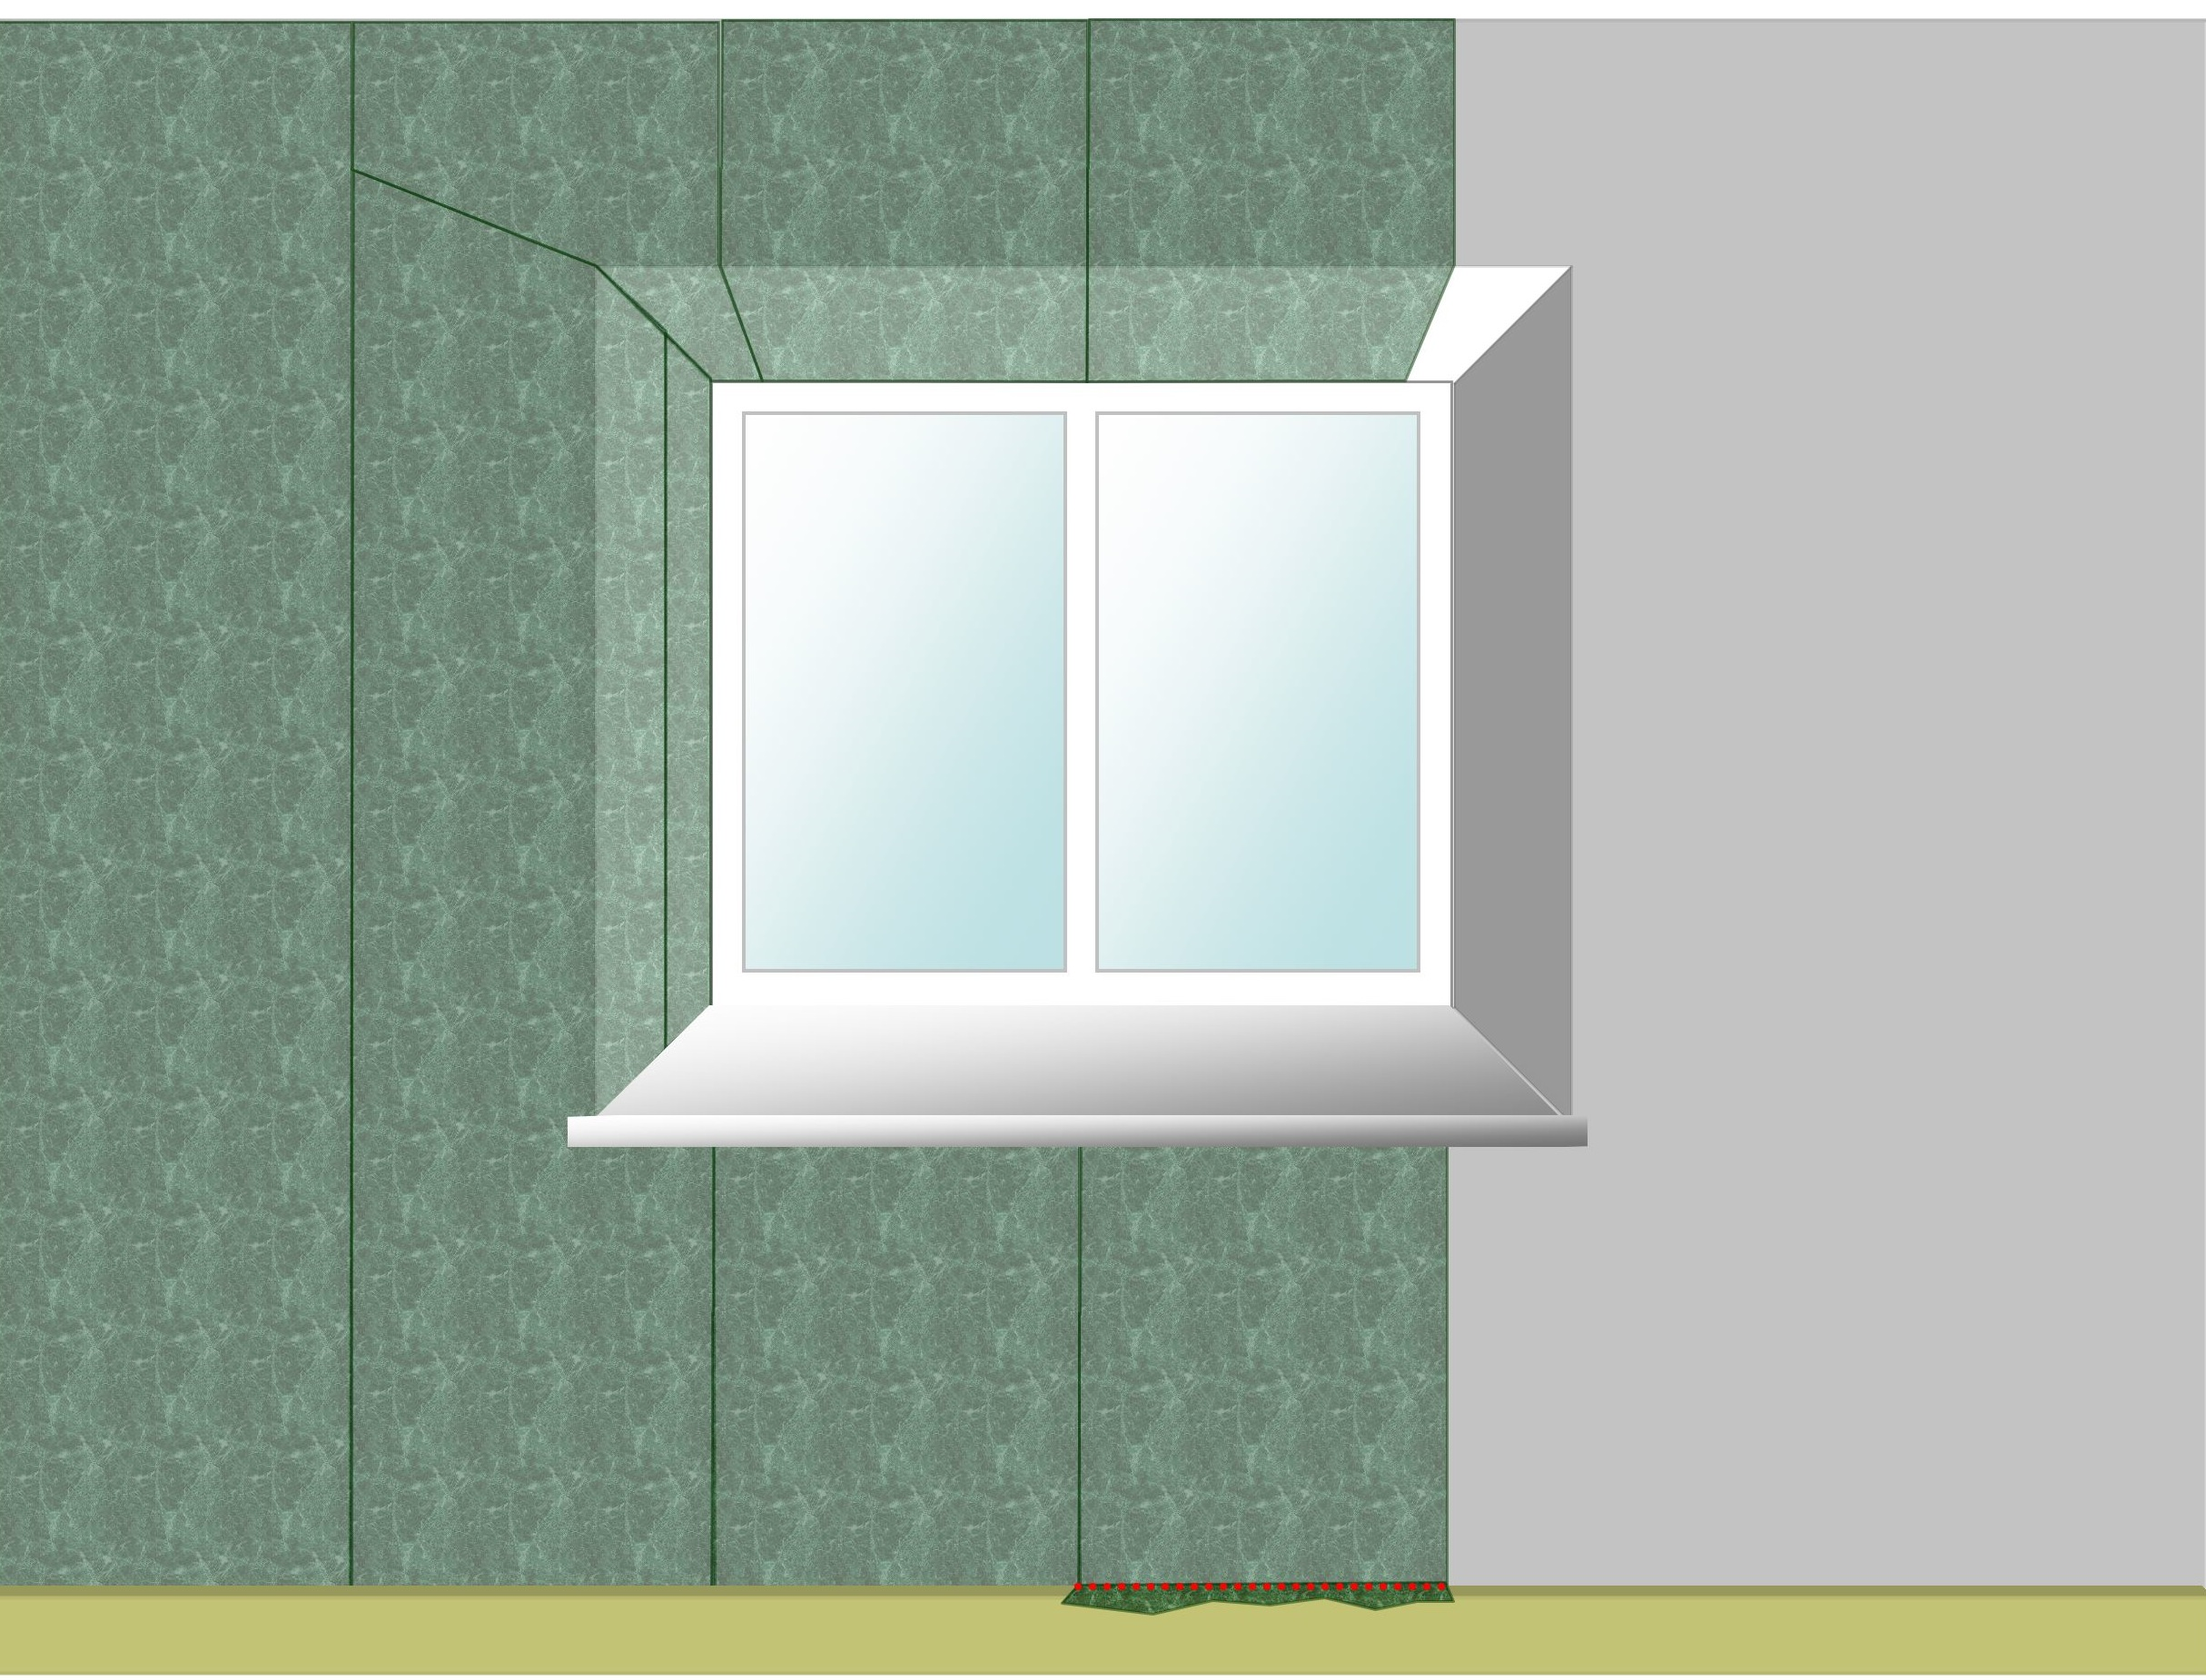 Wallpapering Windows